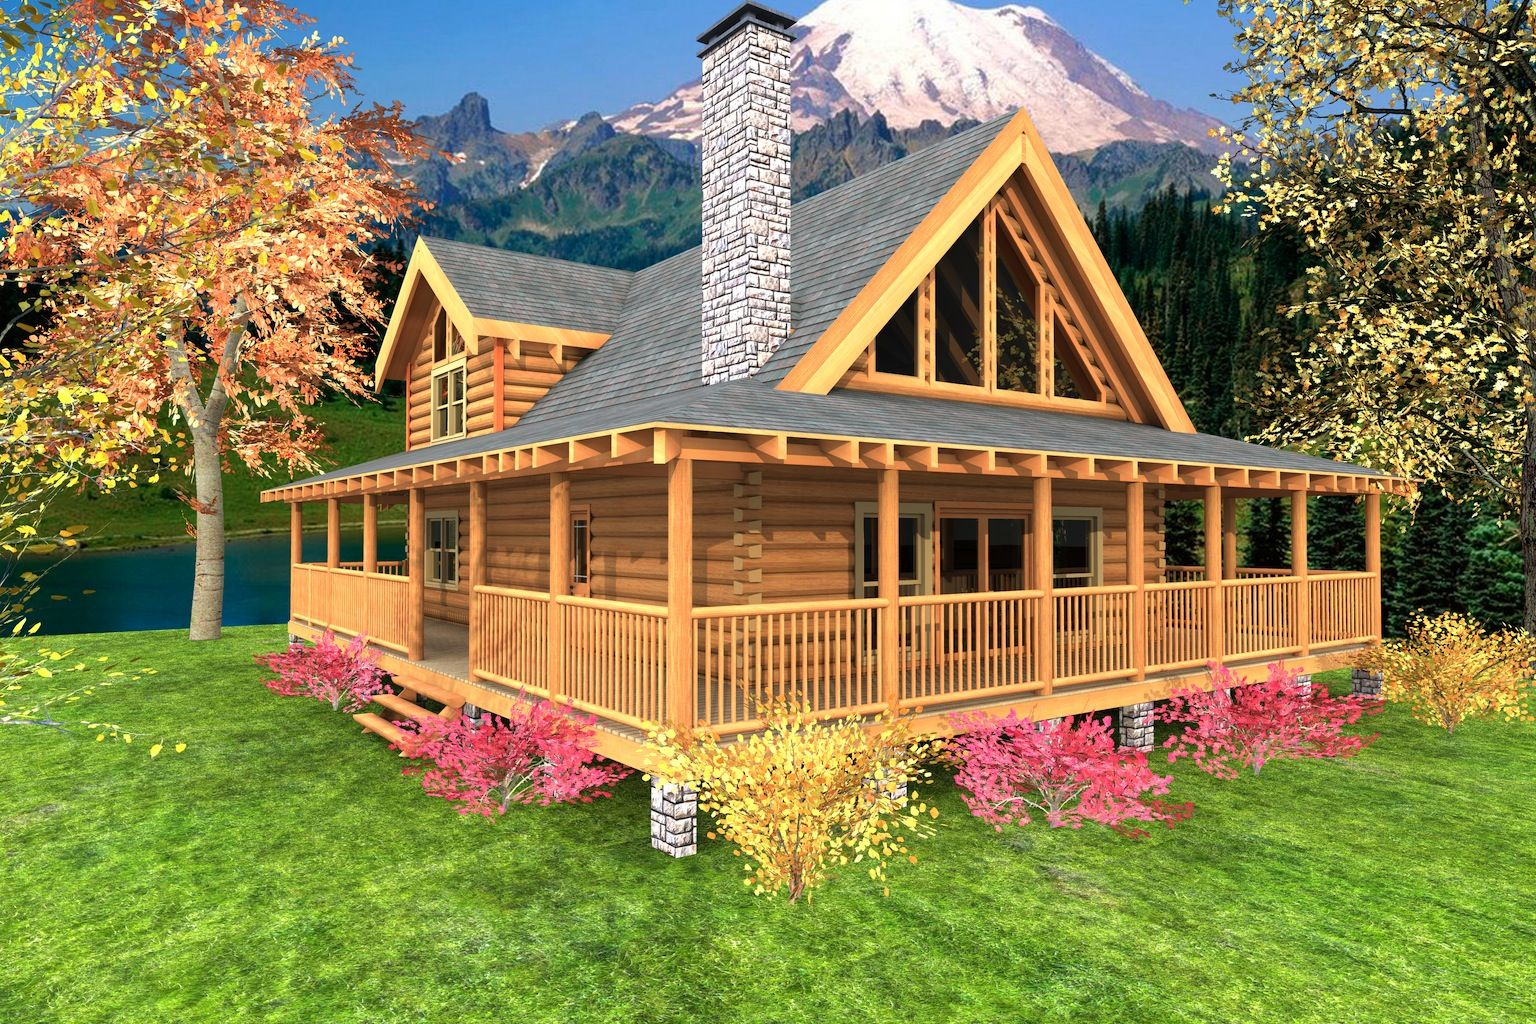 21 rustic log cabin interior design ideas a frame cabin plans a